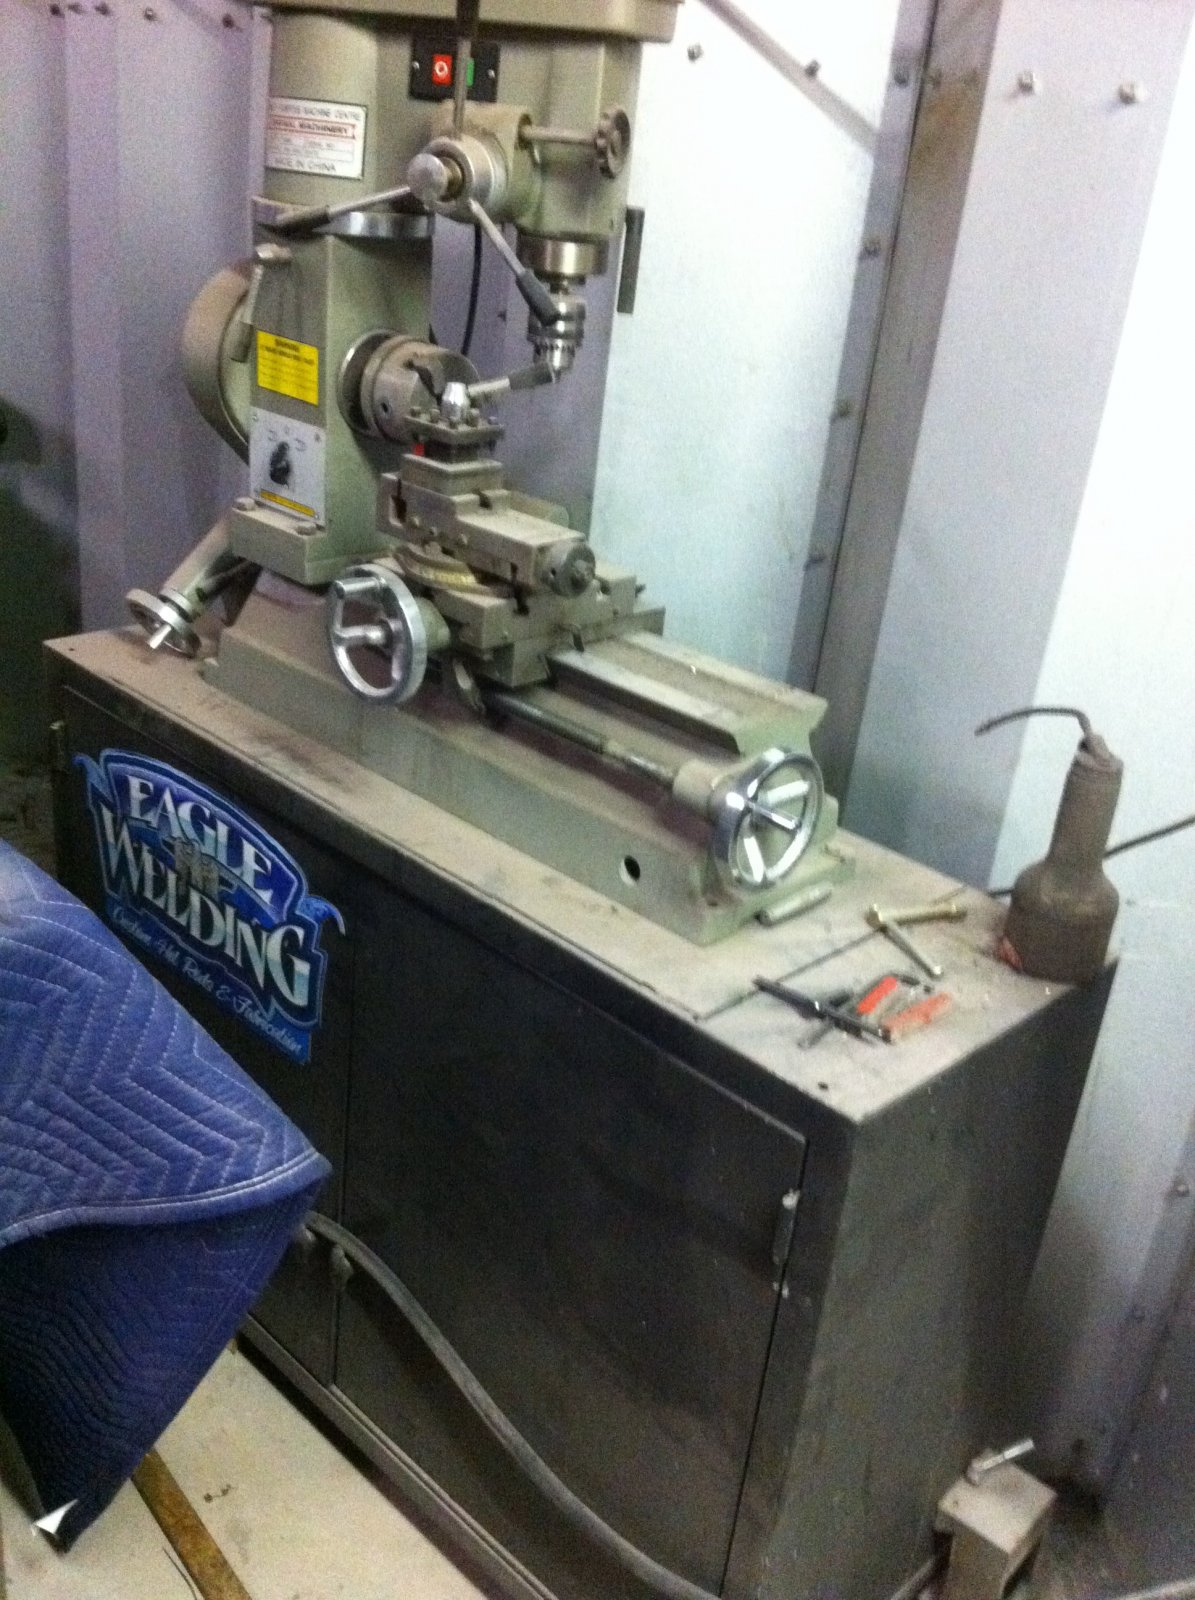 drill press metal lathe. i bought this only used it a handful of times works perfectly comes mounted on heavy duty cabinet pick up or you arraigne shipping weights about drill press metal lathe